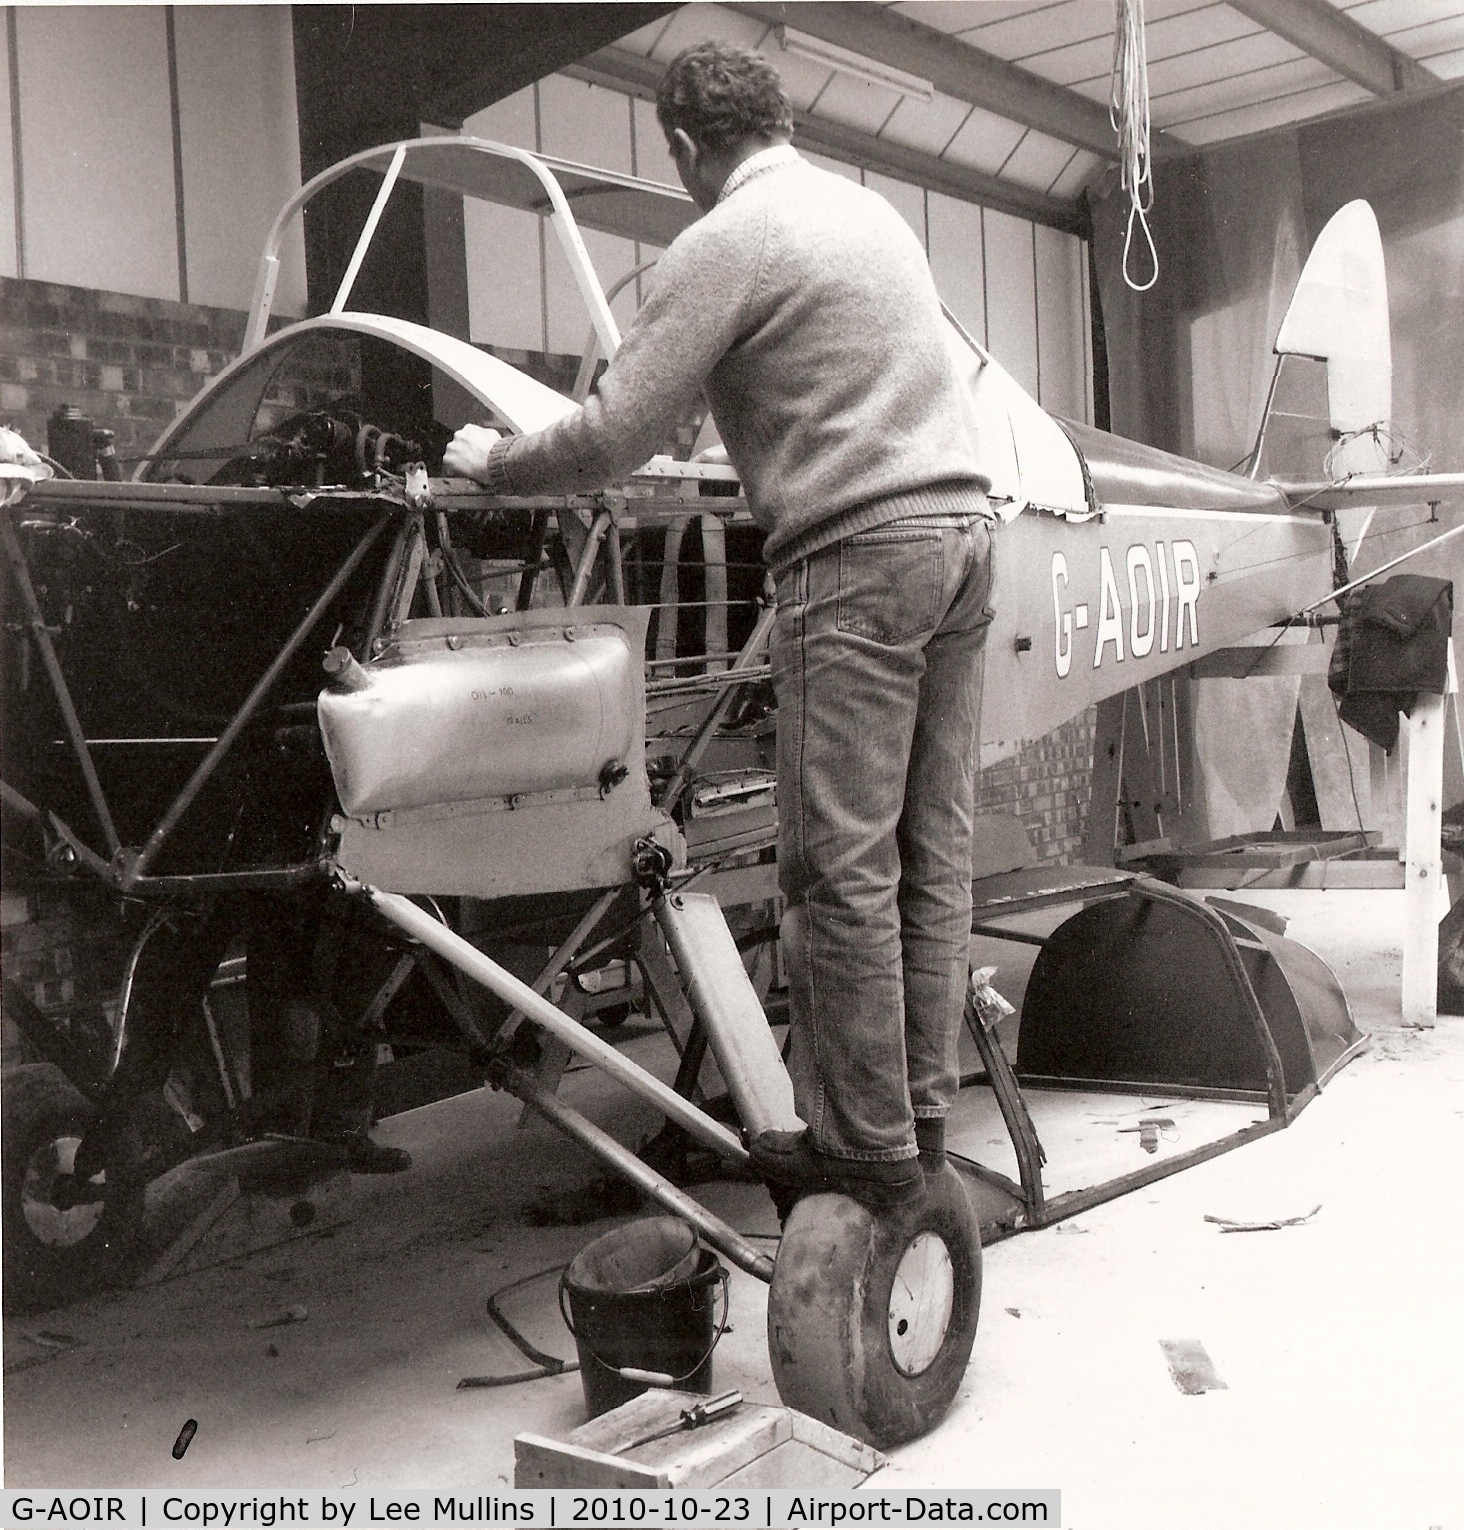 G-AOIR, 1943 Thruxton Jackaroo C/N 82882, G-AOIR at Meppershall, when operated by The Stevenage Flying Group. A steel framed cabin had just been fitted to replace the rapidly deteriorating wooden original. Les Smith, who later purchased the aircraft, is working on the fuselage.